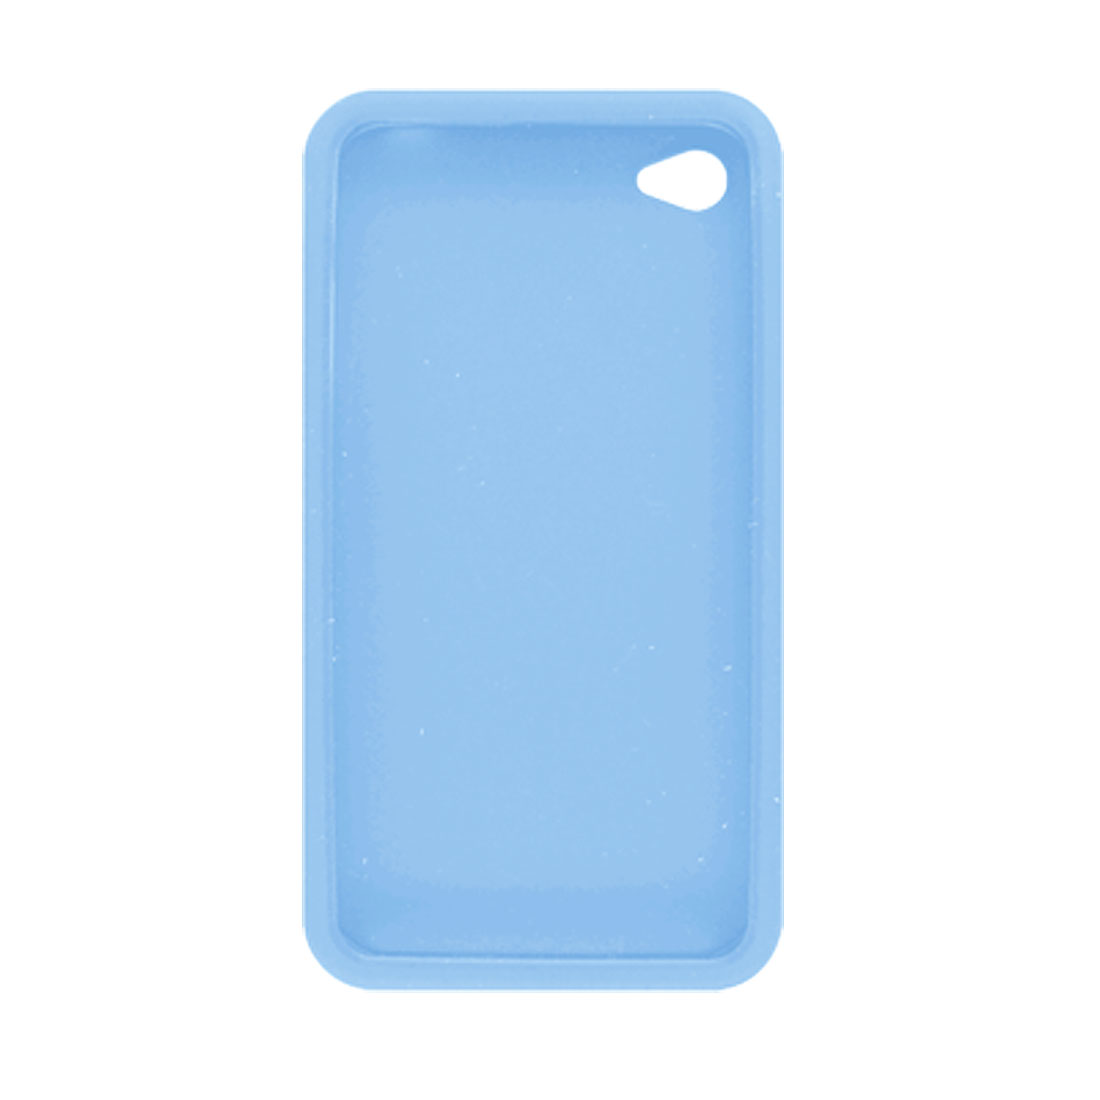 Blue Silicone Skin Case + Screen Guard for Apple iPhone 4 4G